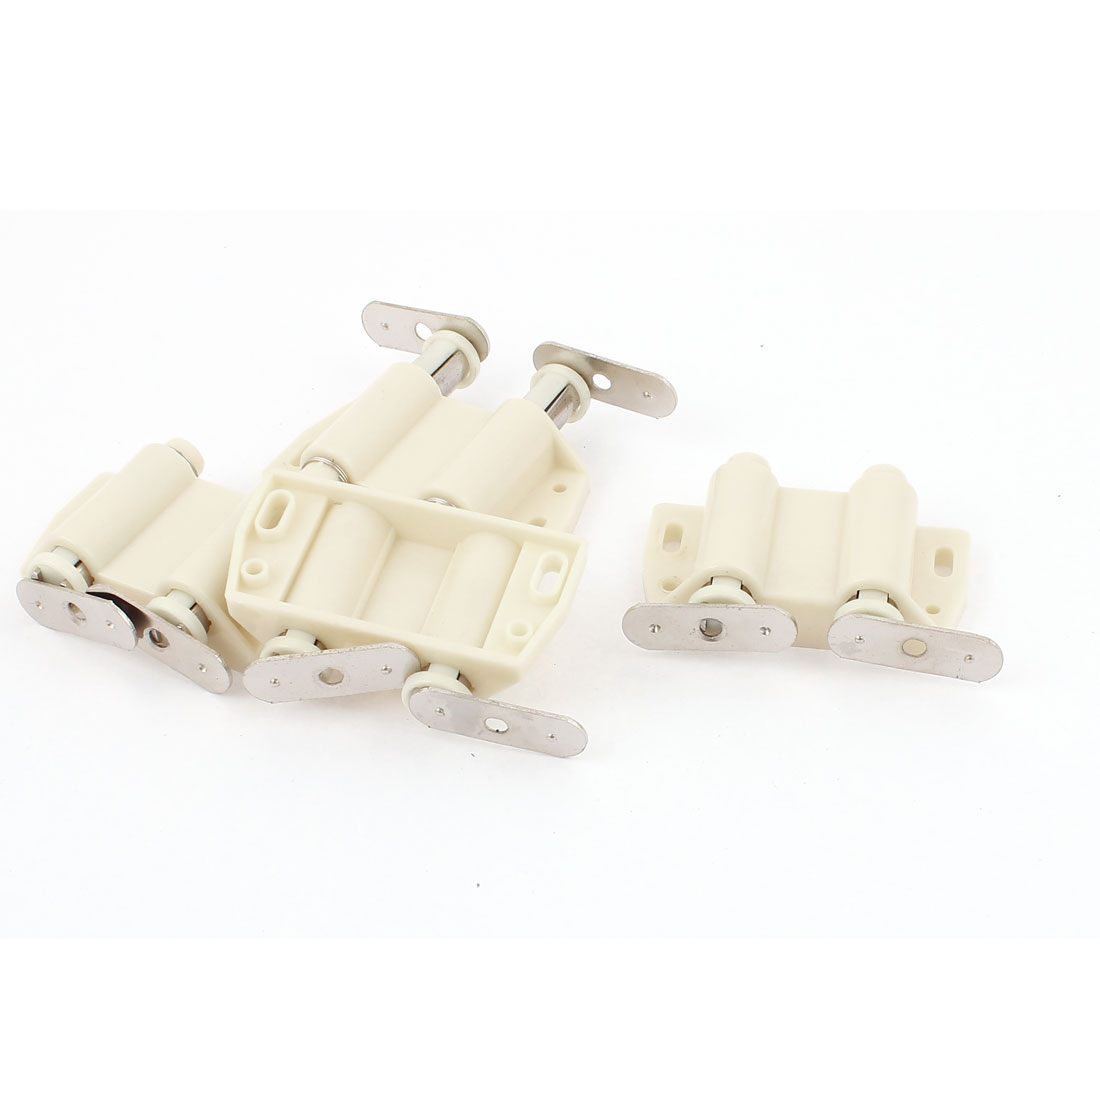 Cabinet Door Push Press Open Double Magnet Catch Latch Beige 4 Sets